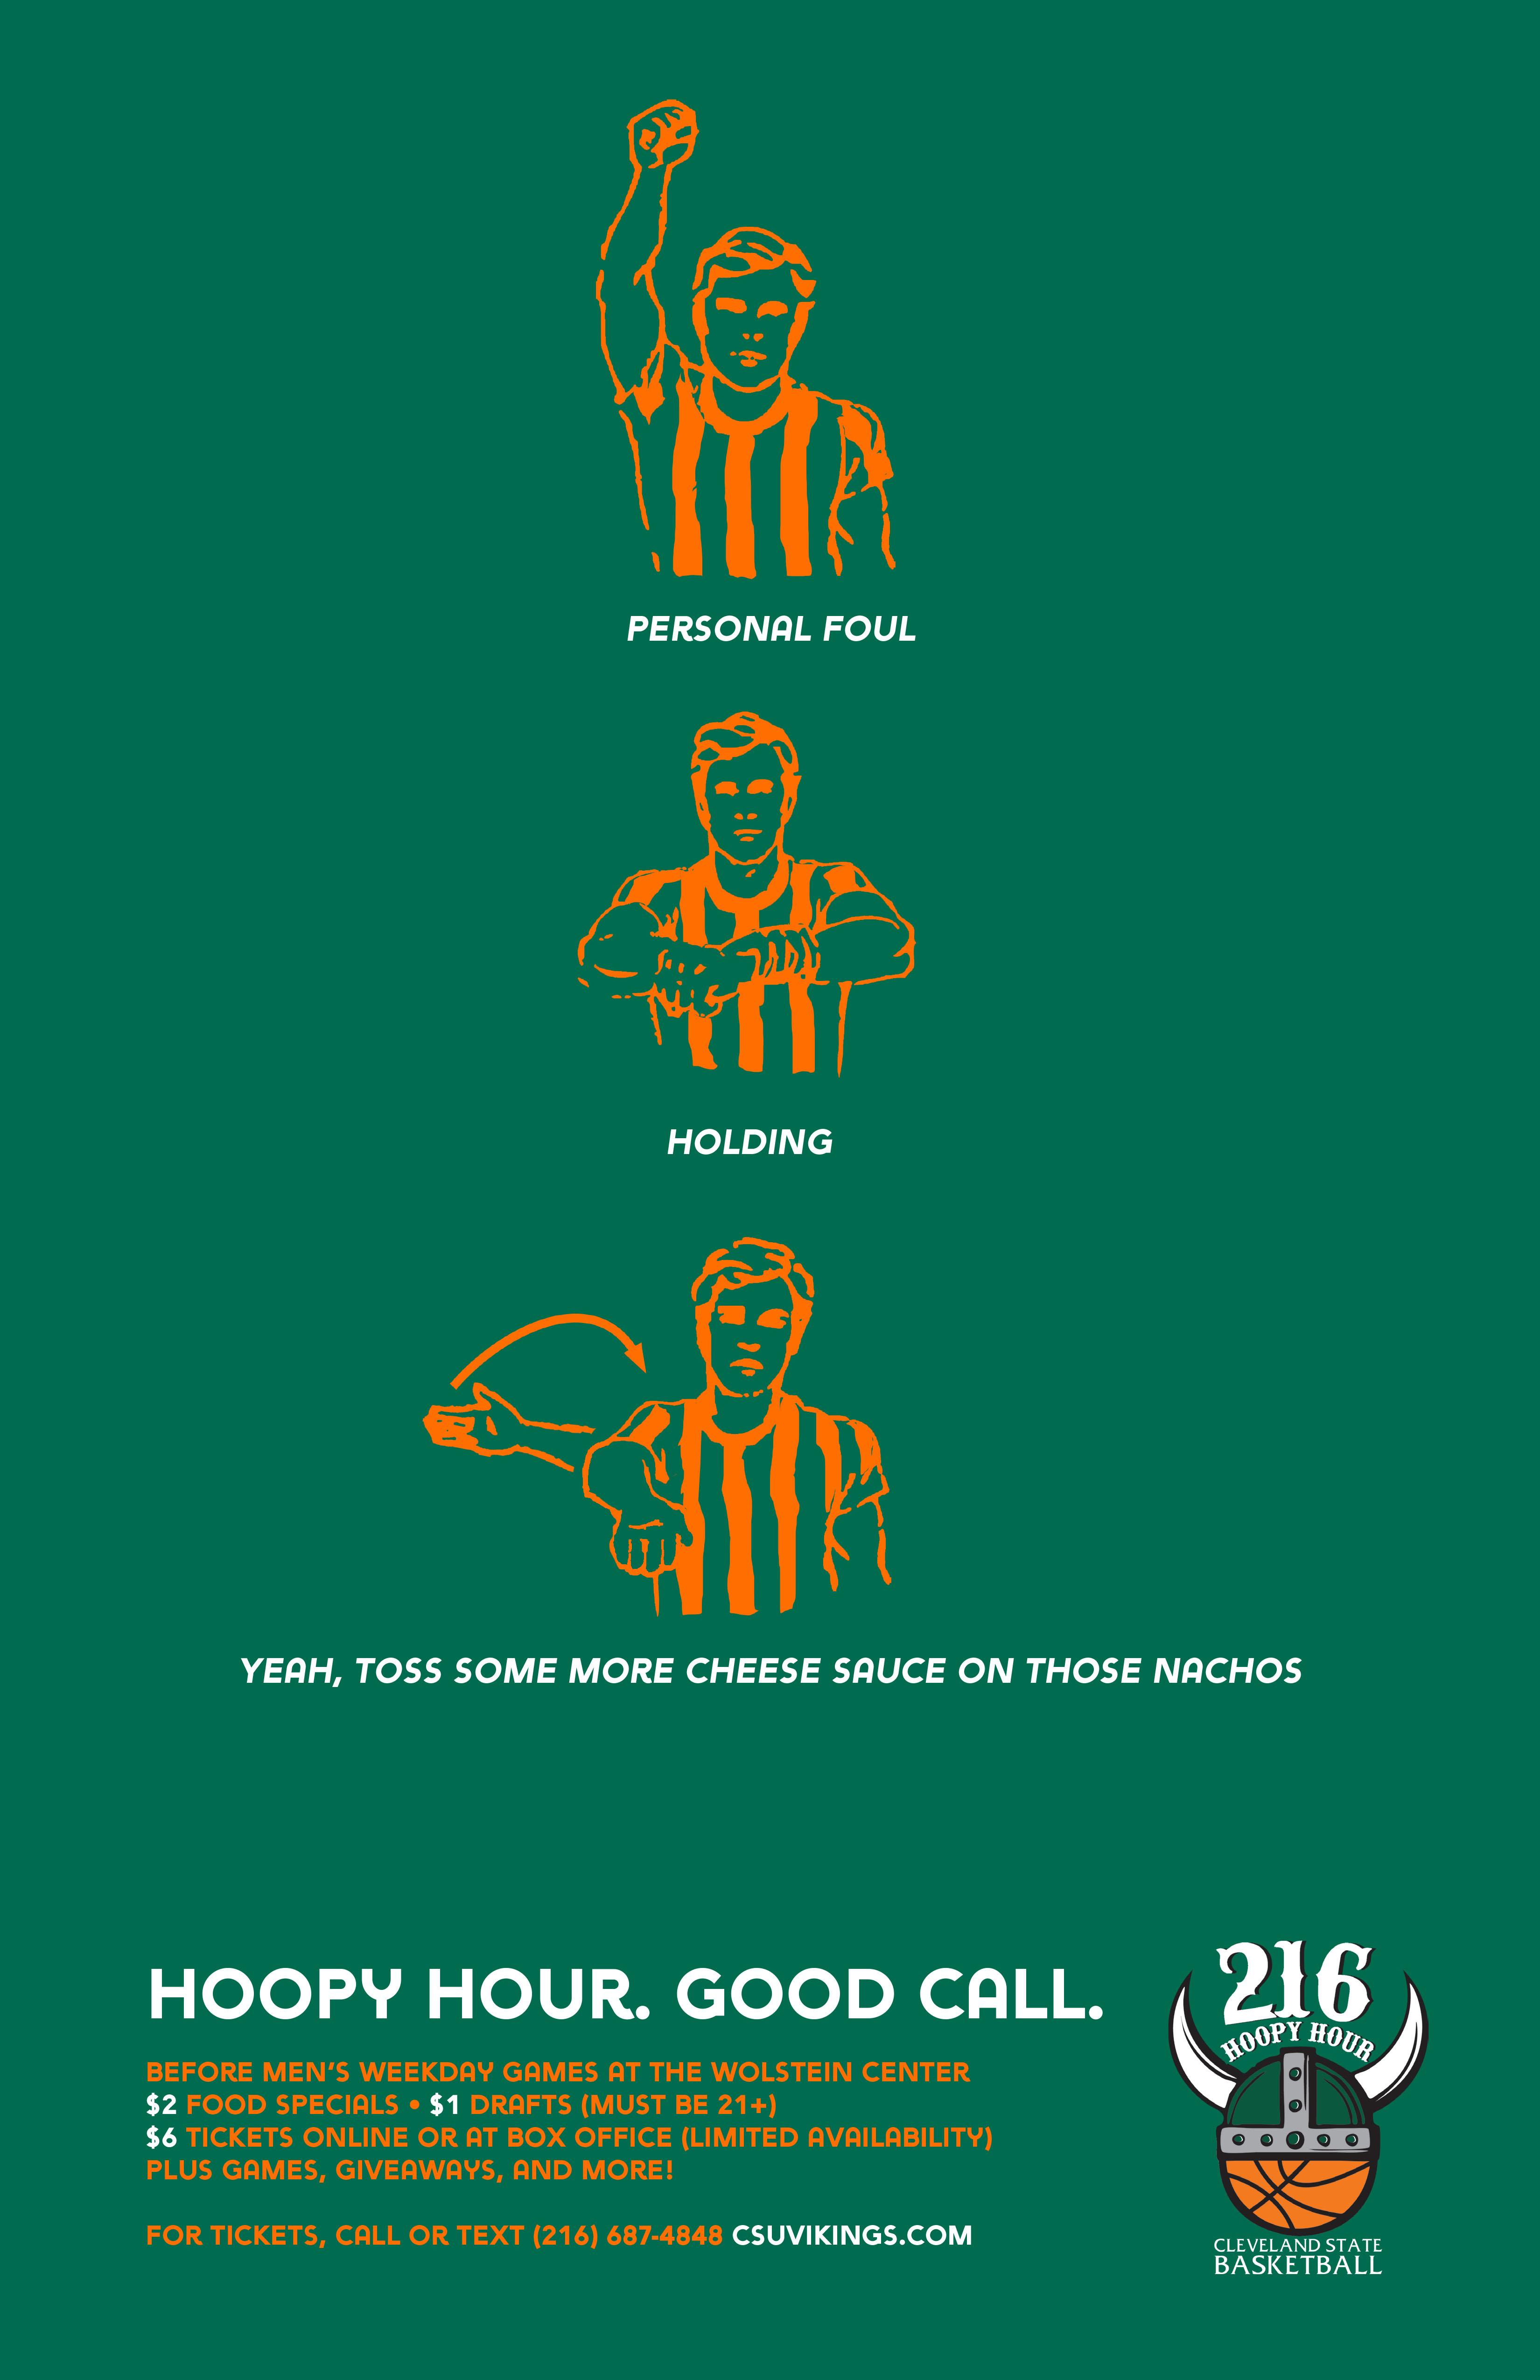 Cleveland State University Print Ad - More Cheese